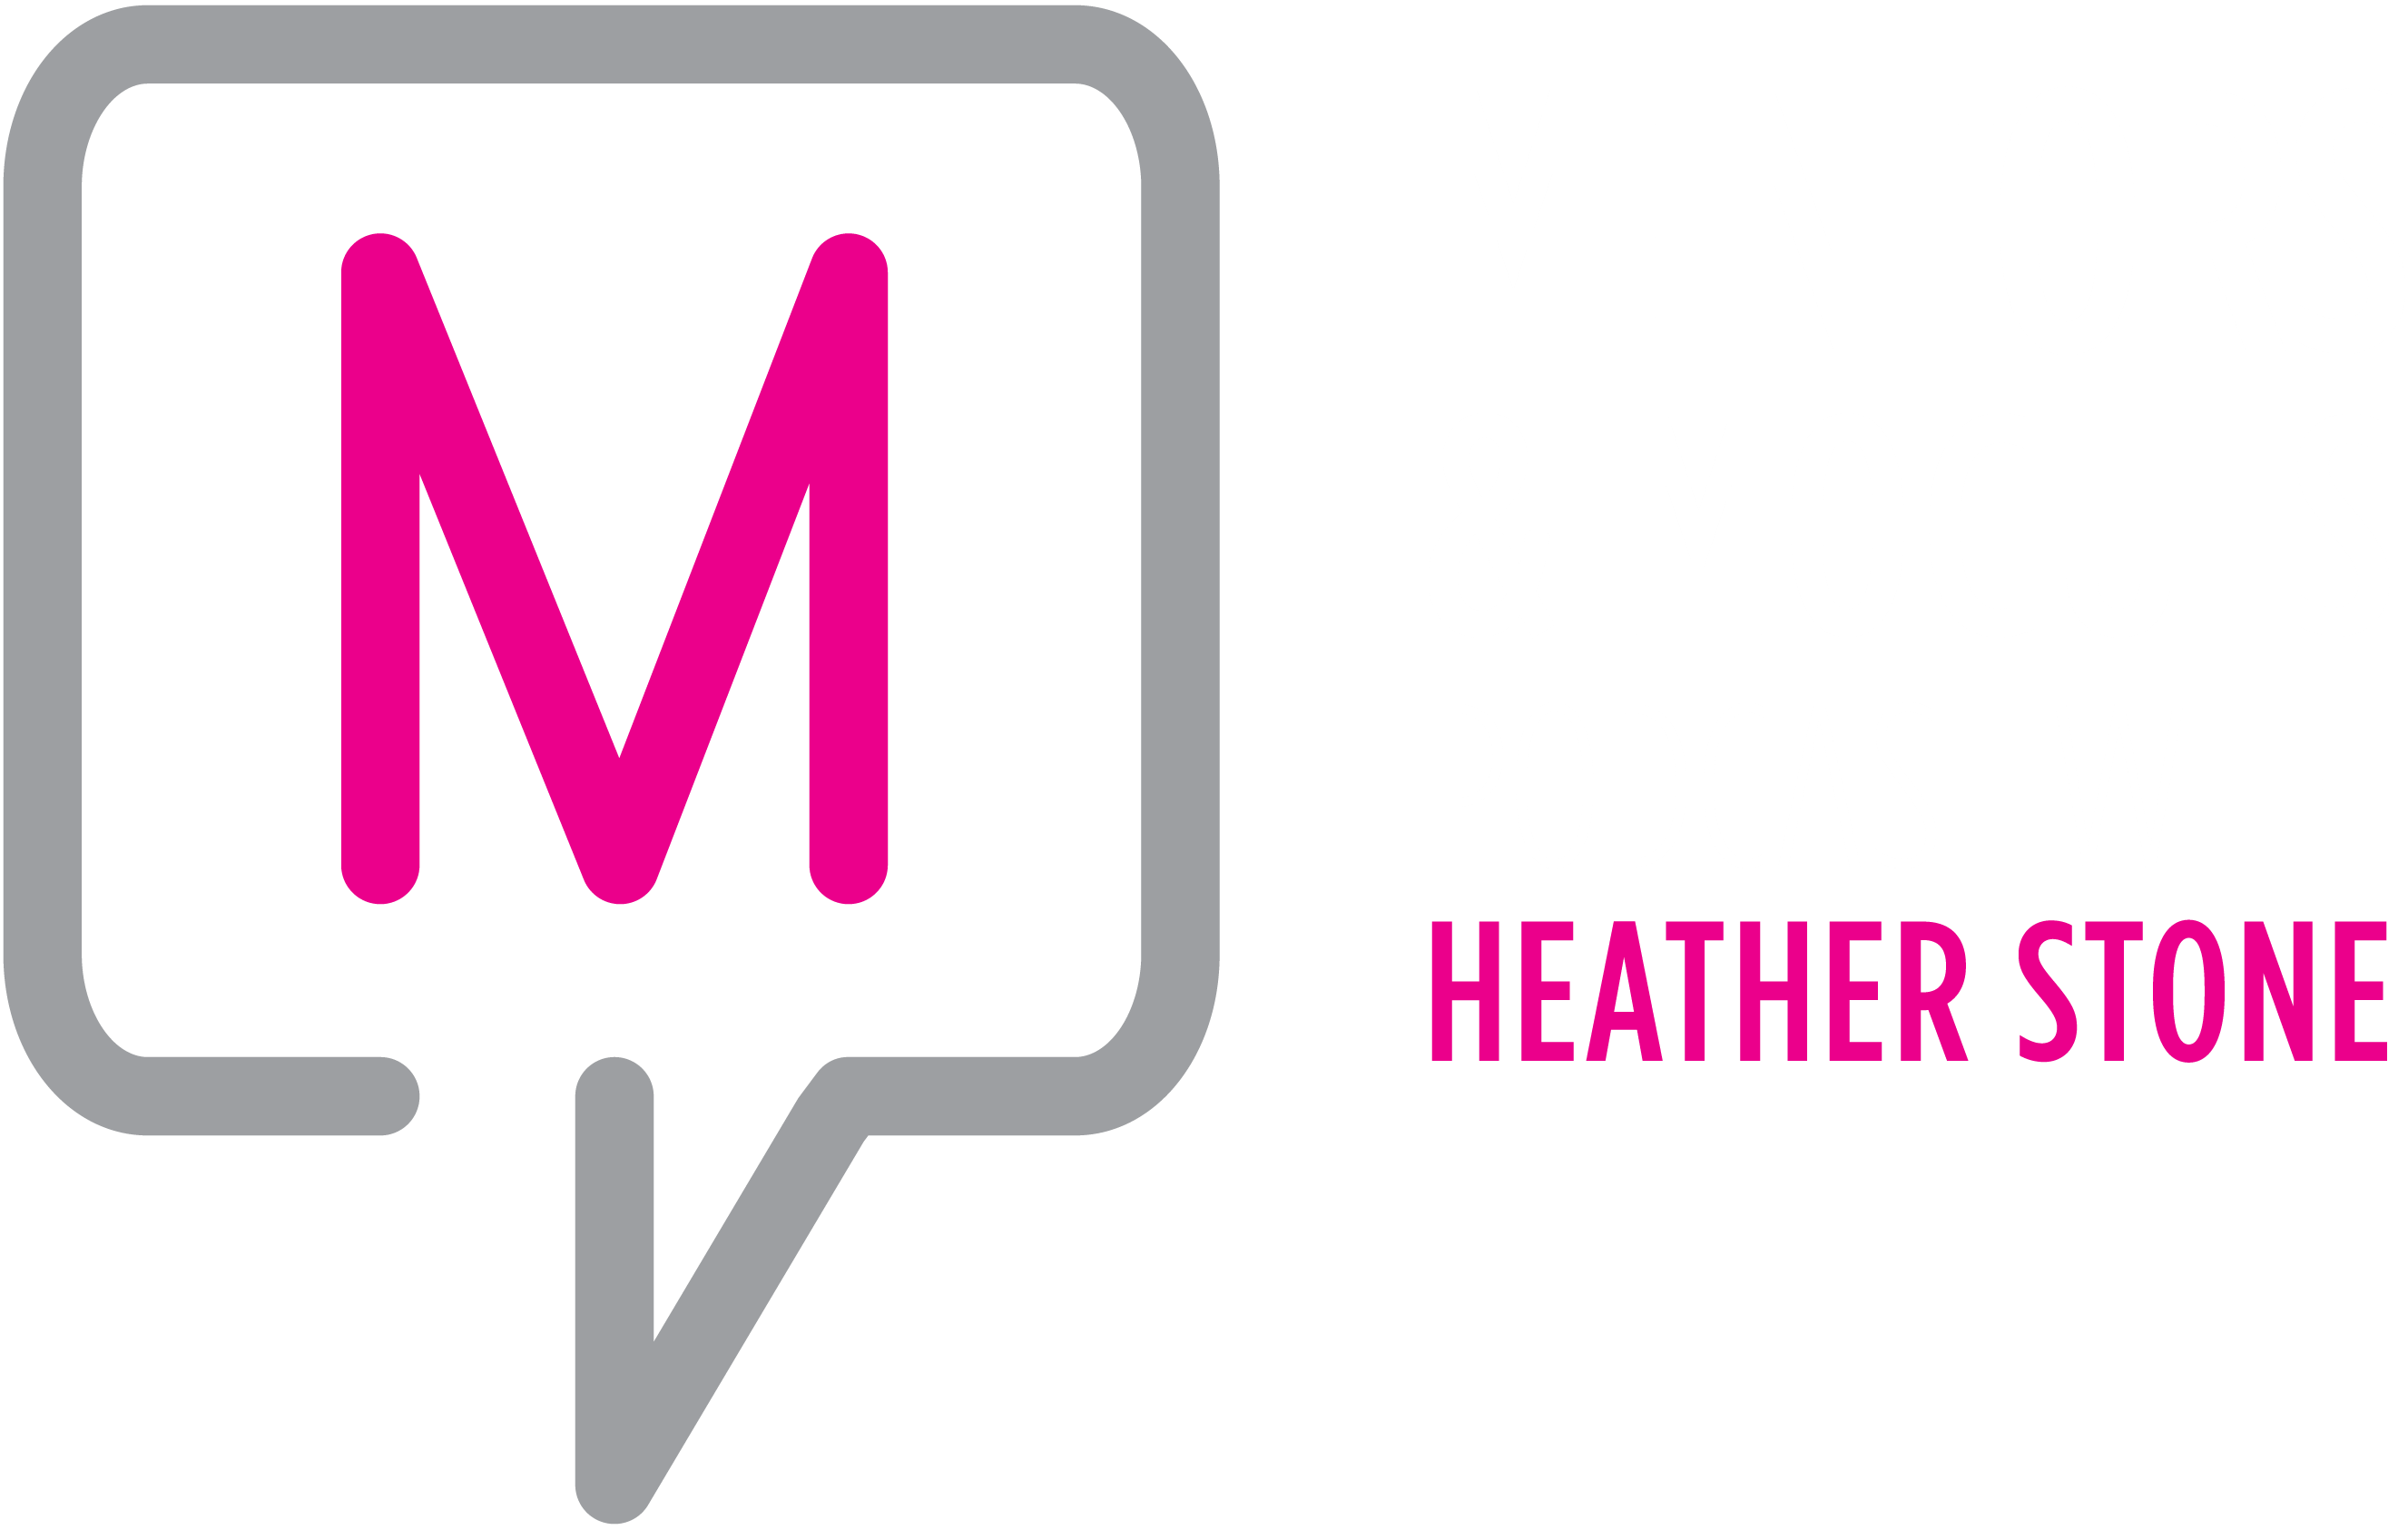 Mentors & Moguls Podcast